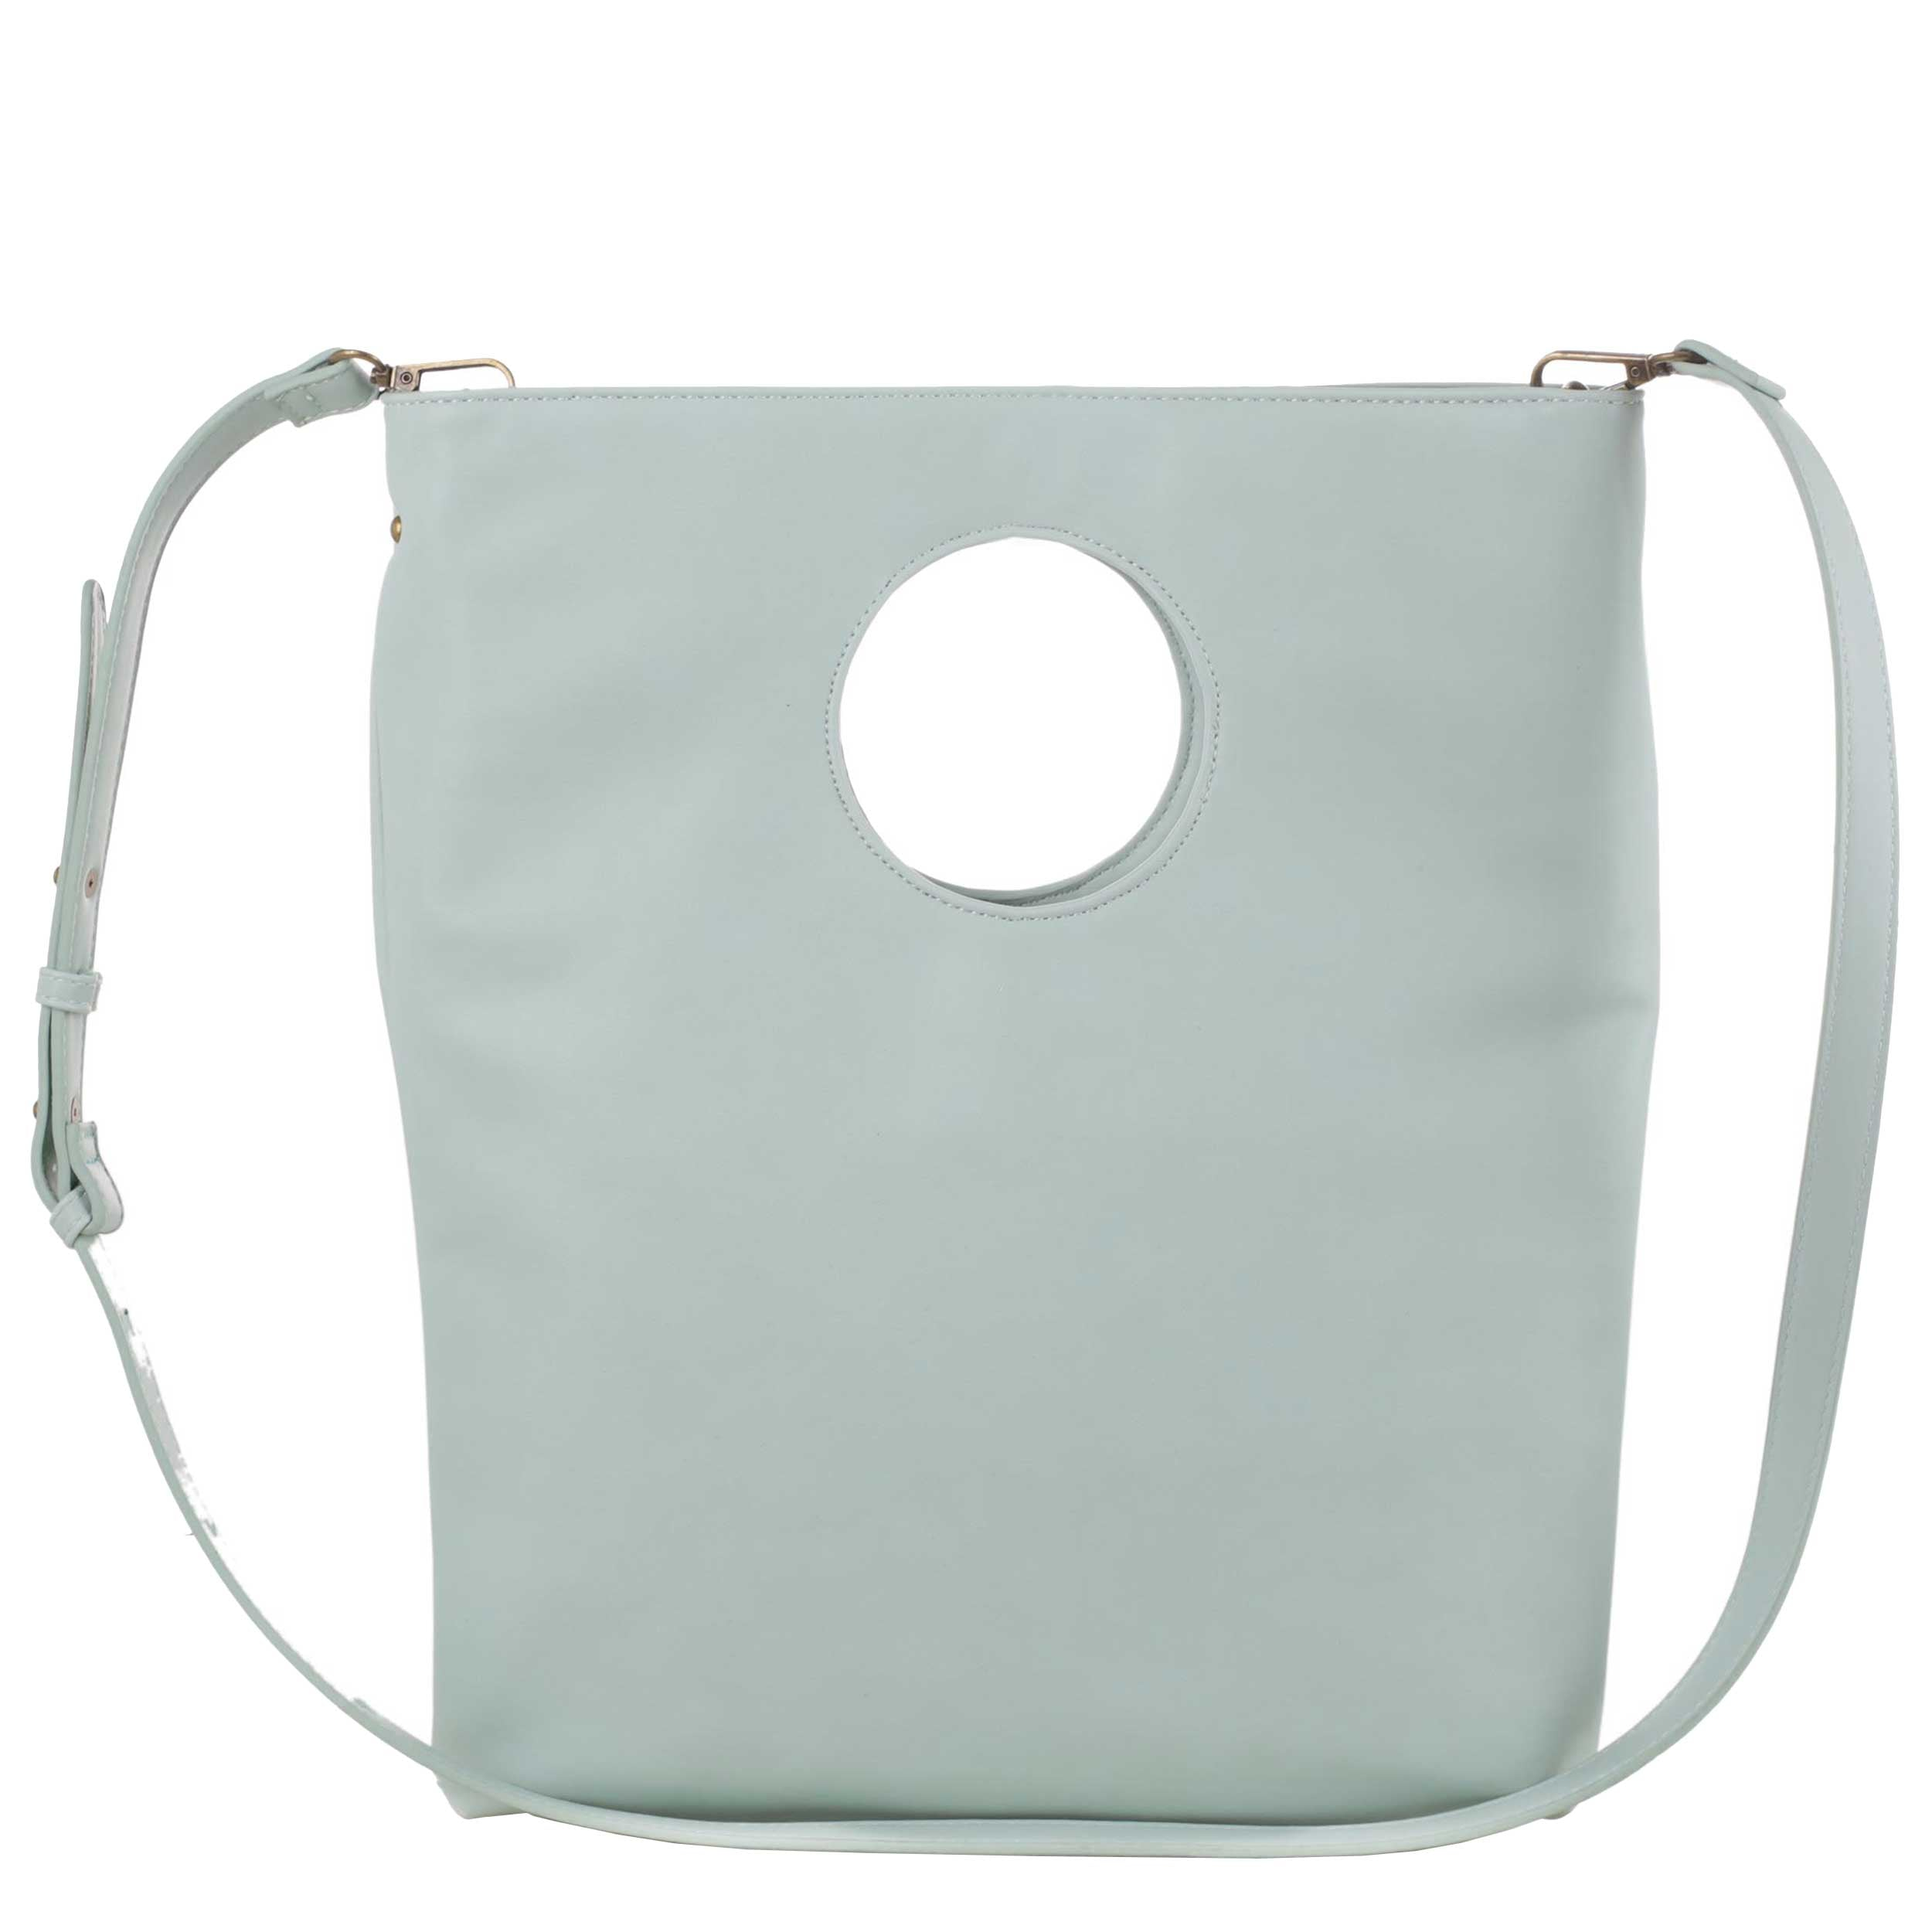 Azure Cut-Out Handle Fold-over Tote